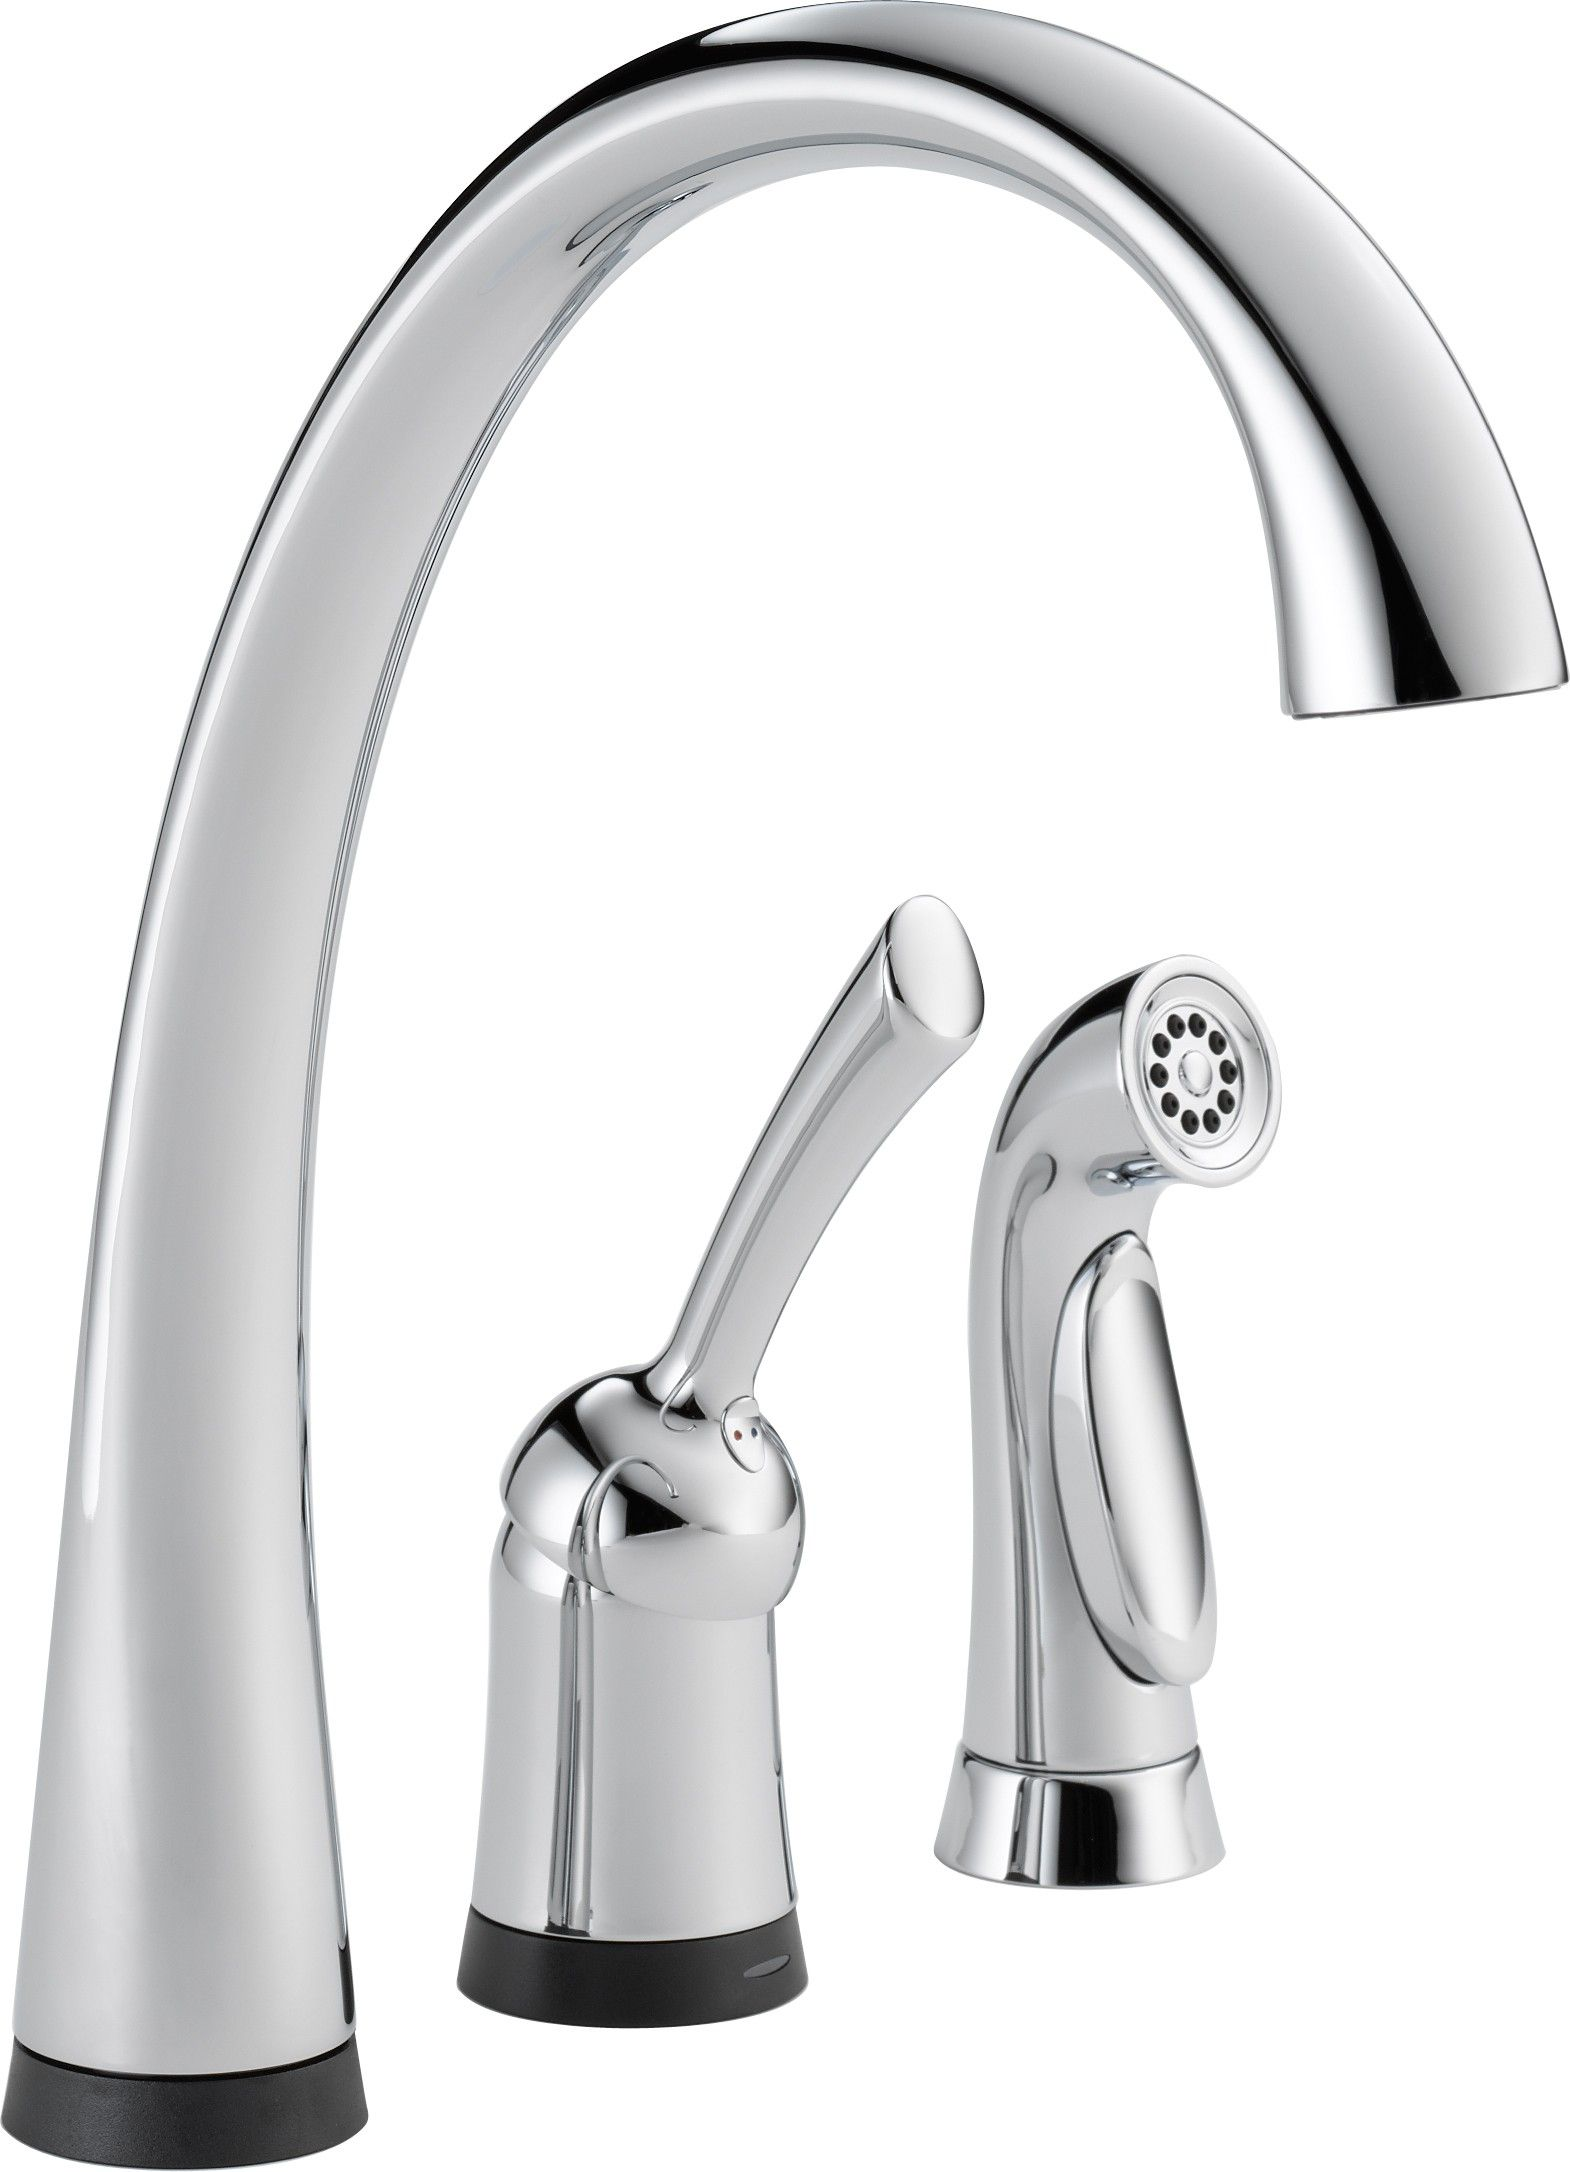 Delta 4380t Dst Pilar Single Handle Kitchen Faucet With Spray